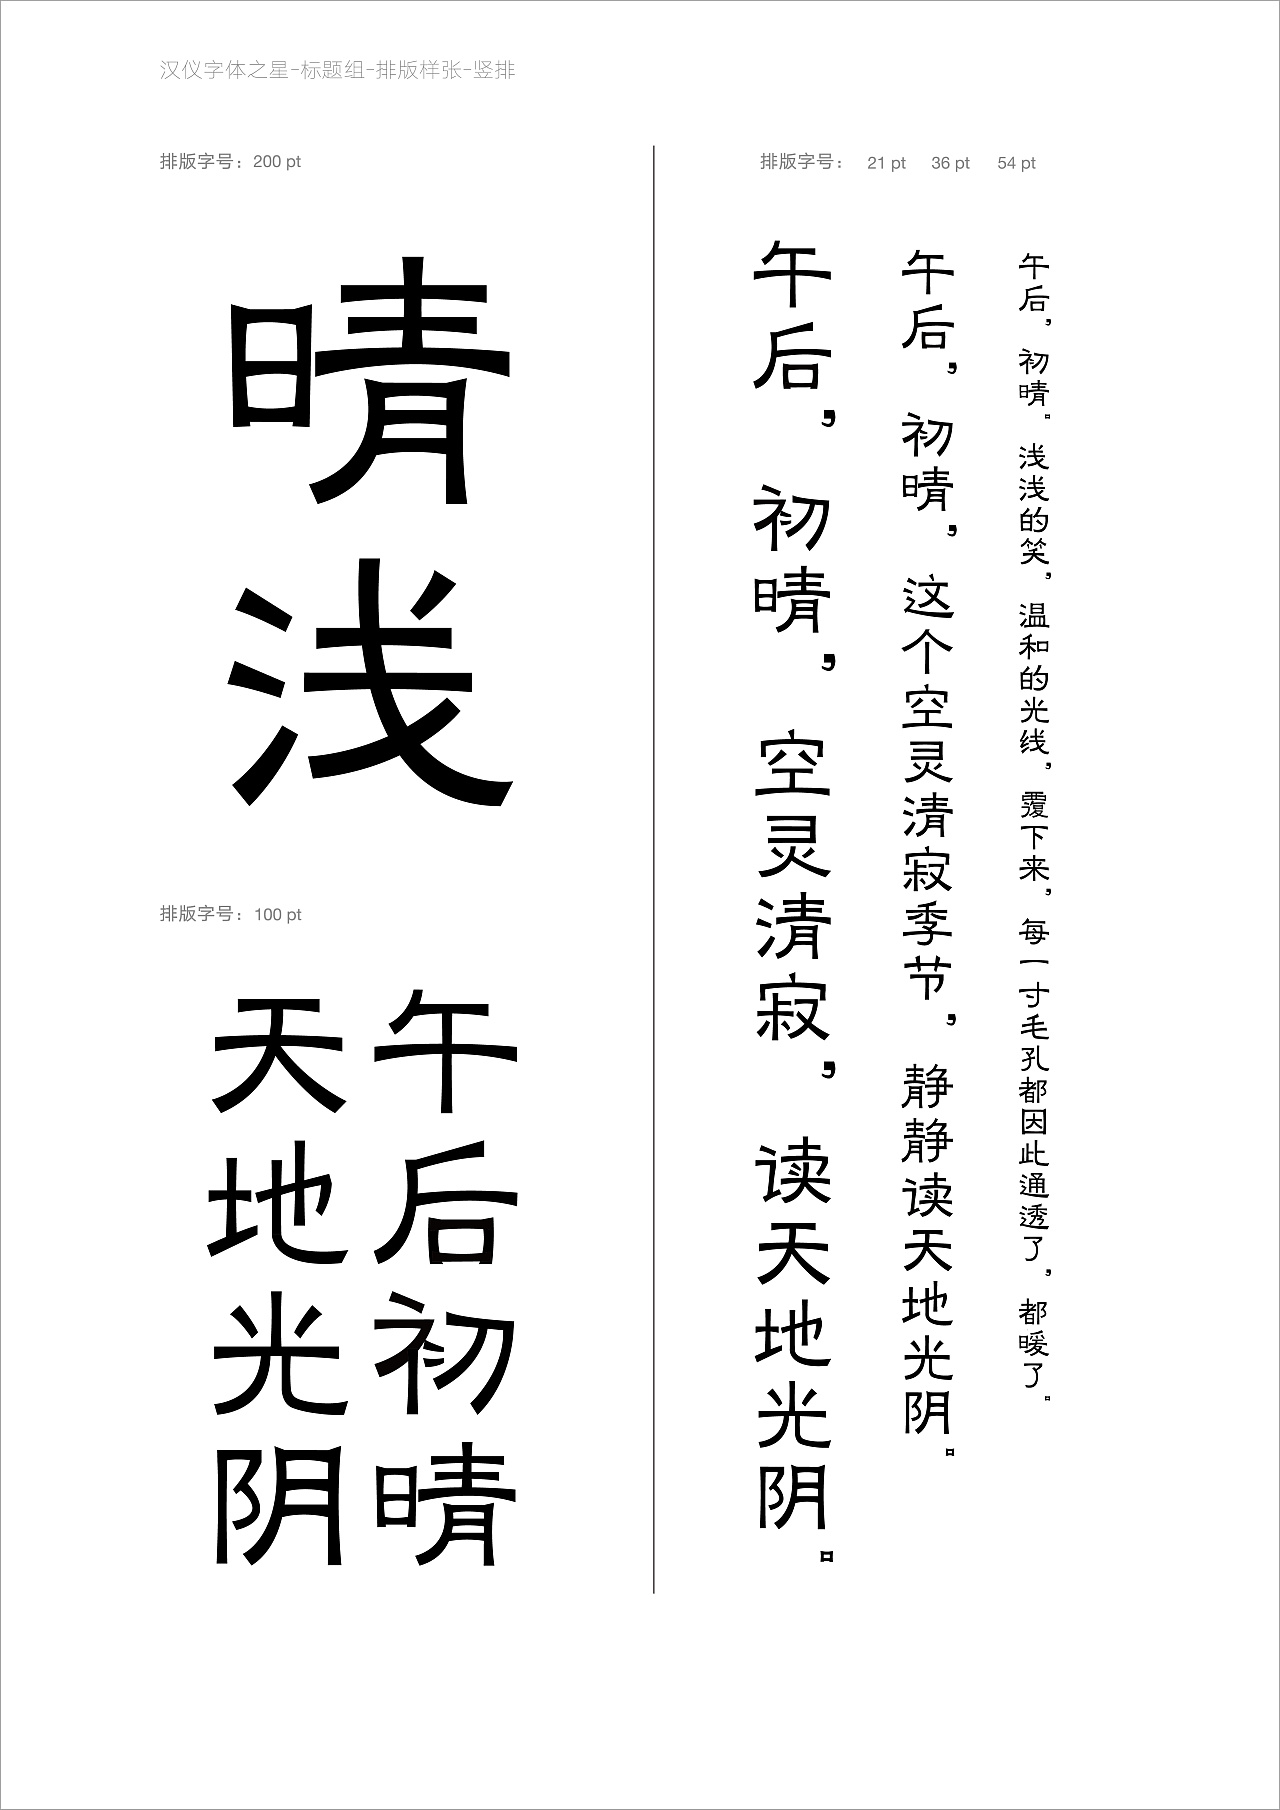 Chinese Creative Font Design-Do you like this bold font design